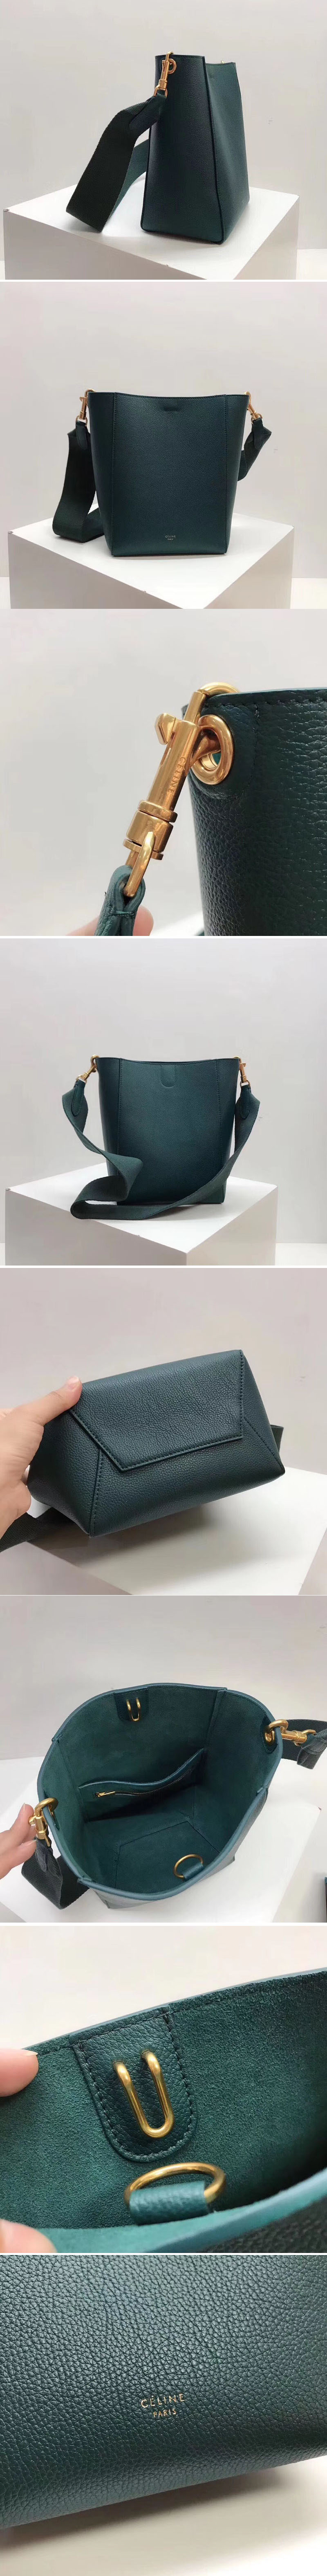 Replica Celine Sangle Small Bucket Bags Soft Grained Calfskin Leather Green